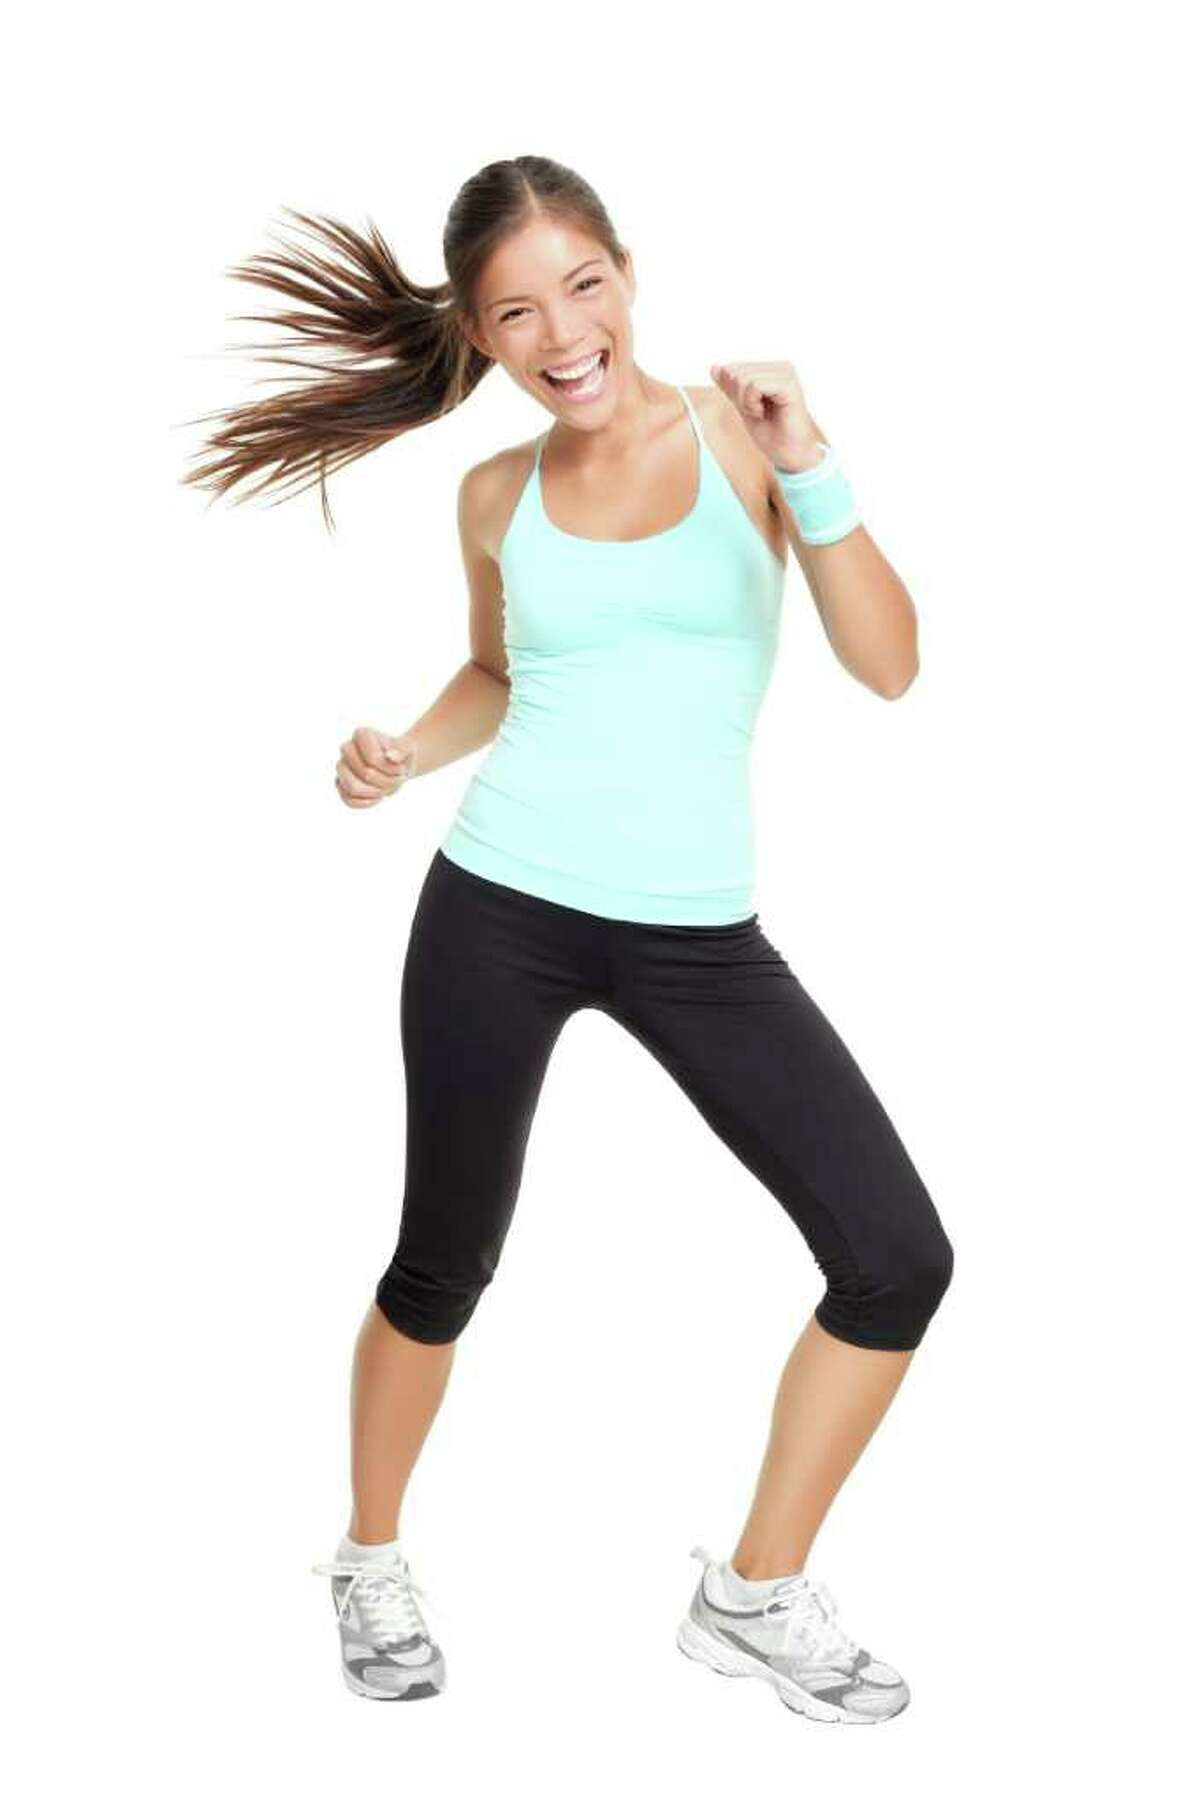 Researchers said abdominal exercises could lead to orgasms in women. (Fotolia)